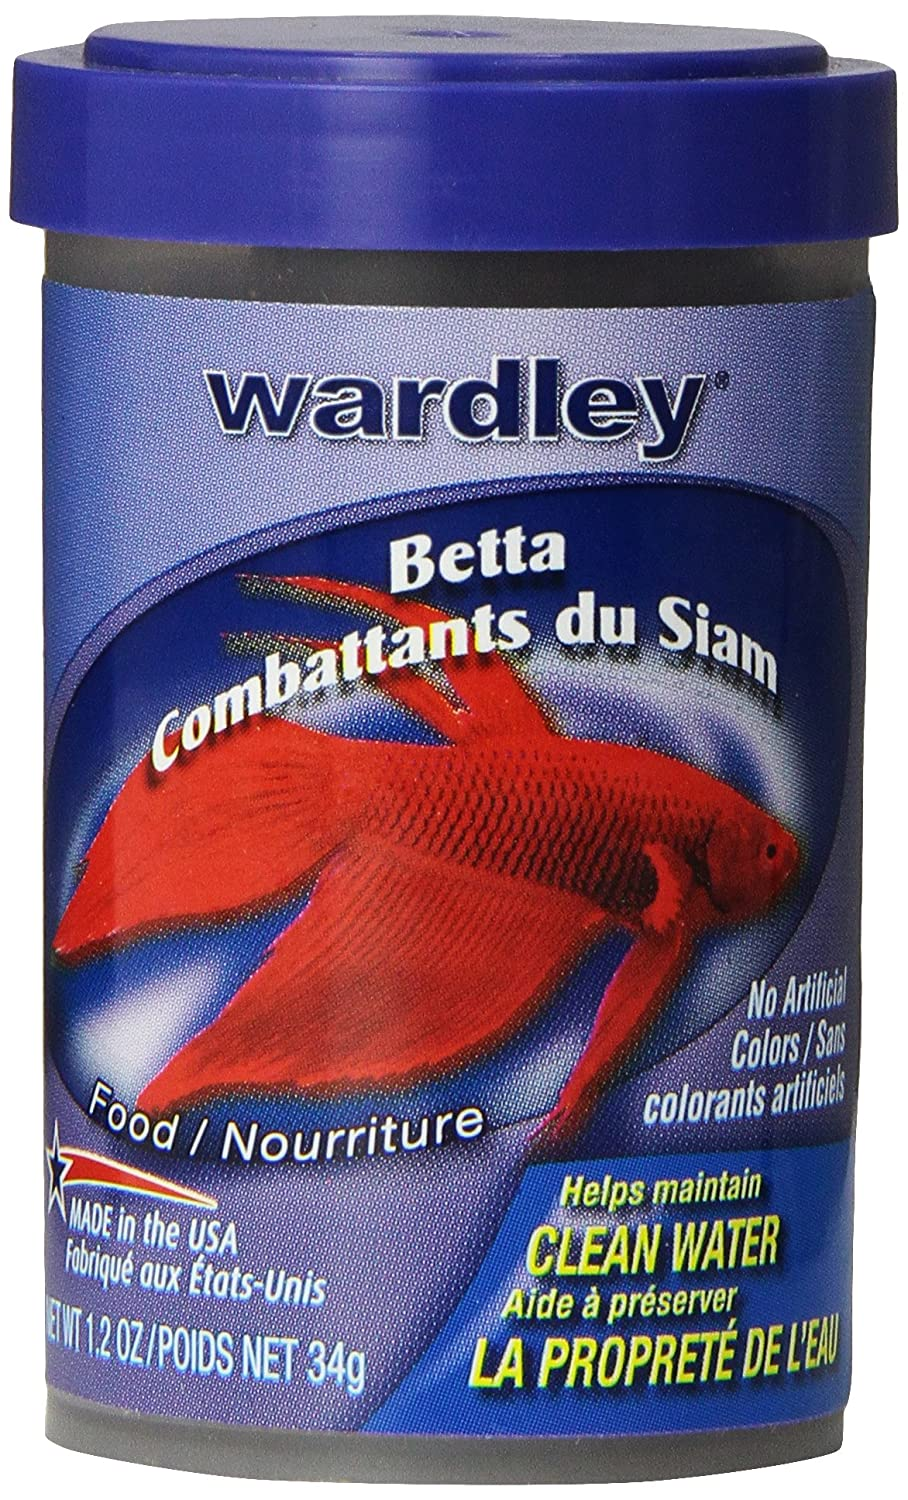 Amazon.com : HARTZ Wardley Betta Fish Food Pellets - 1.2 oz : Pet ...